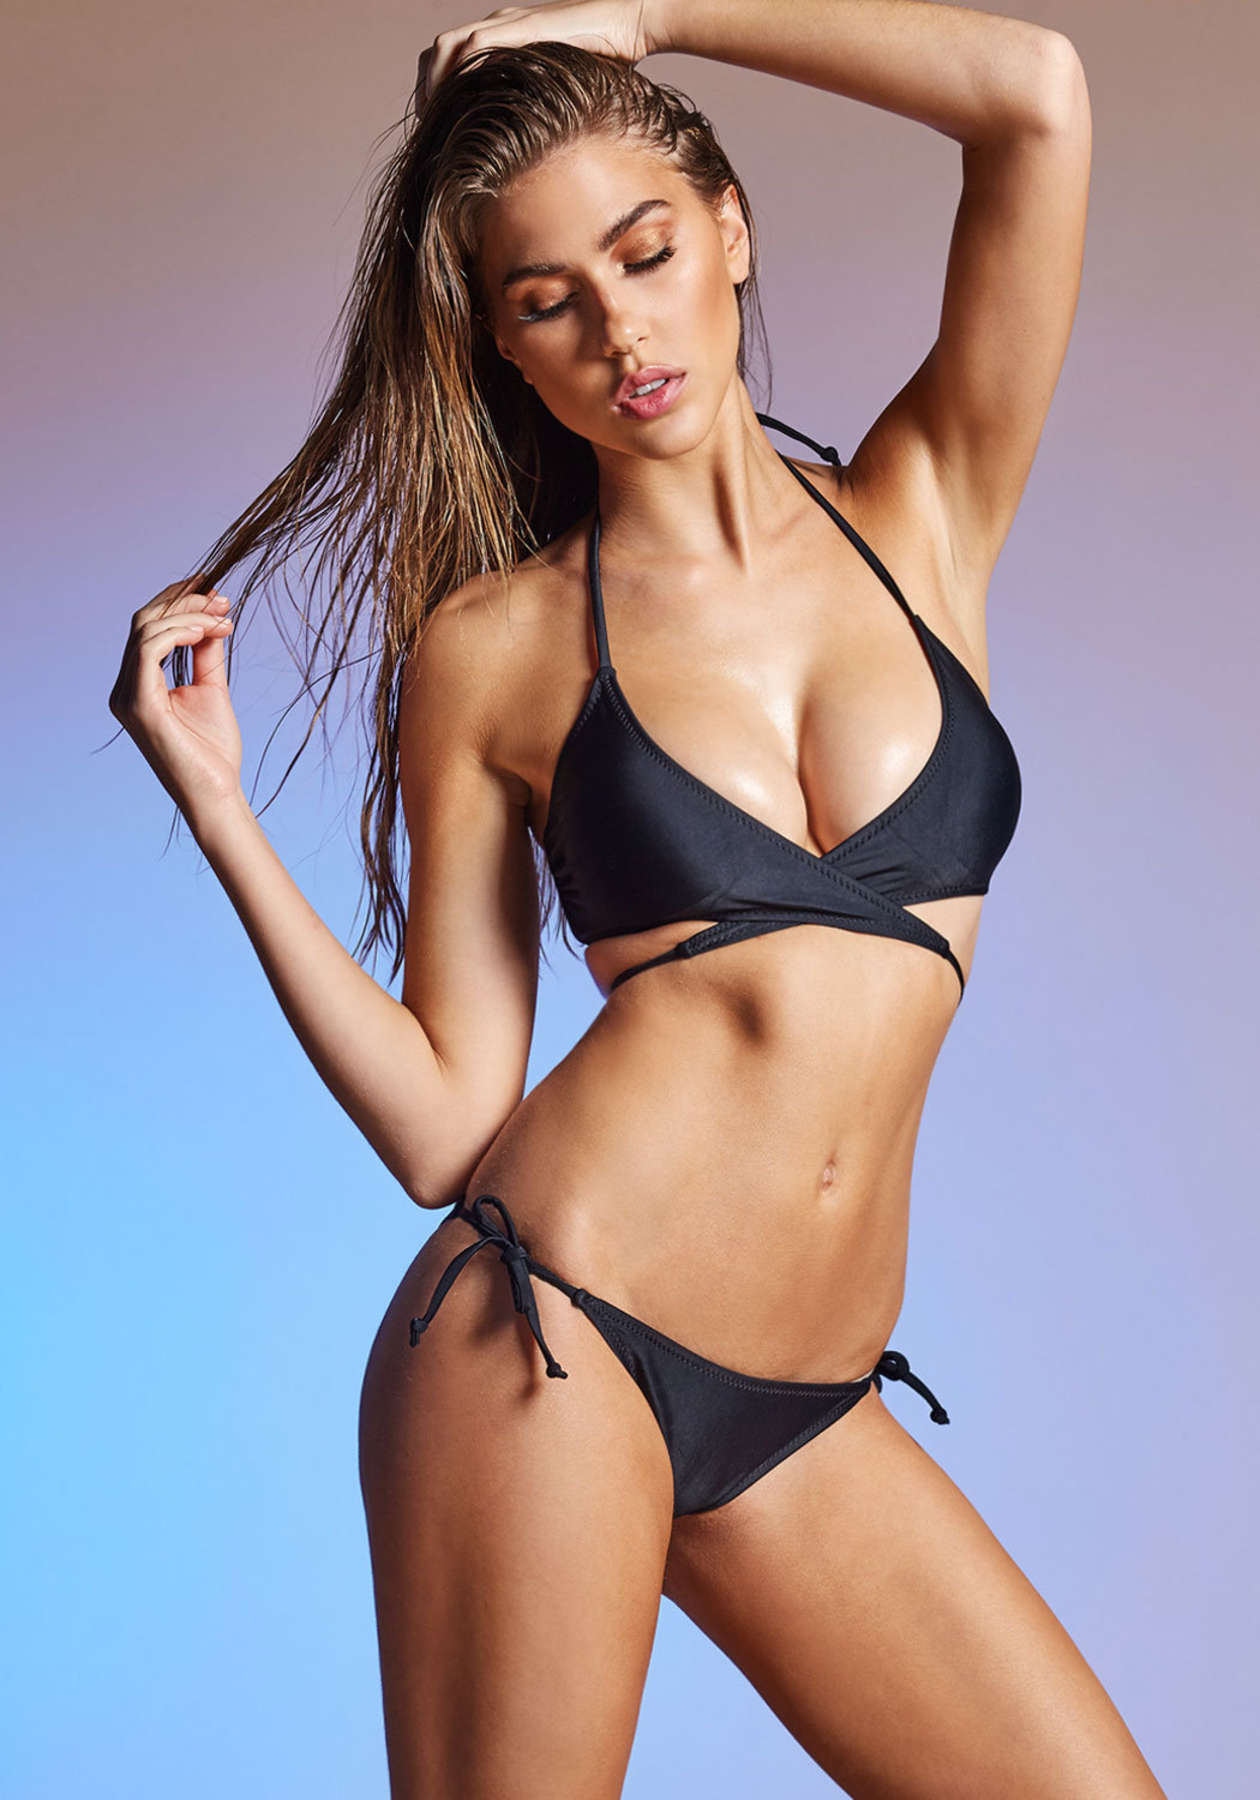 Kara Del Toro in Bikini Hot Photos  Pic 1 of 35